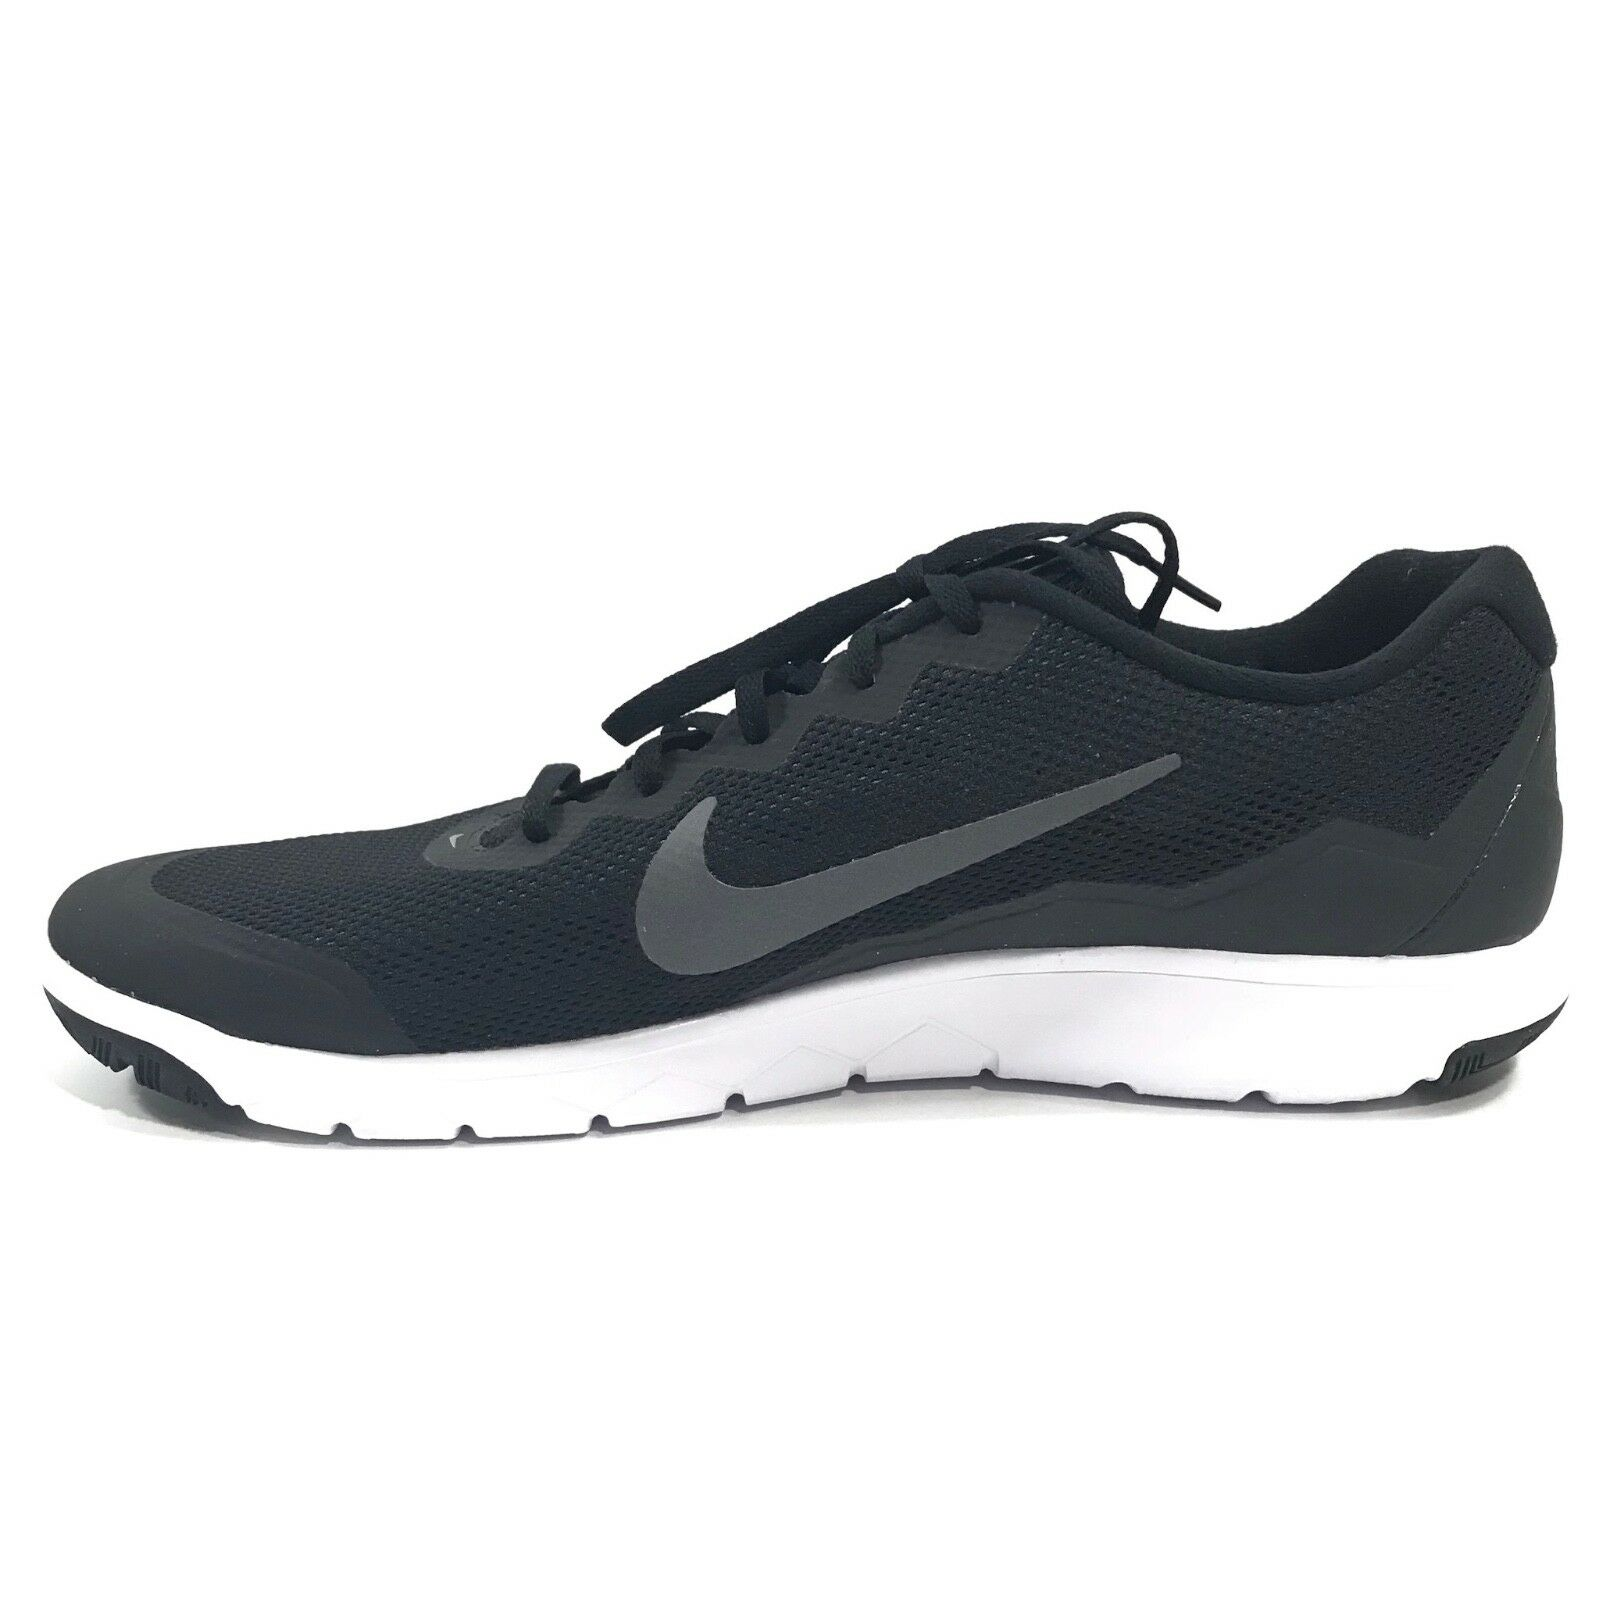 NEW Nike Mens Flex Experience RN 4 Running Training shoes Black Sz 15 749172-001